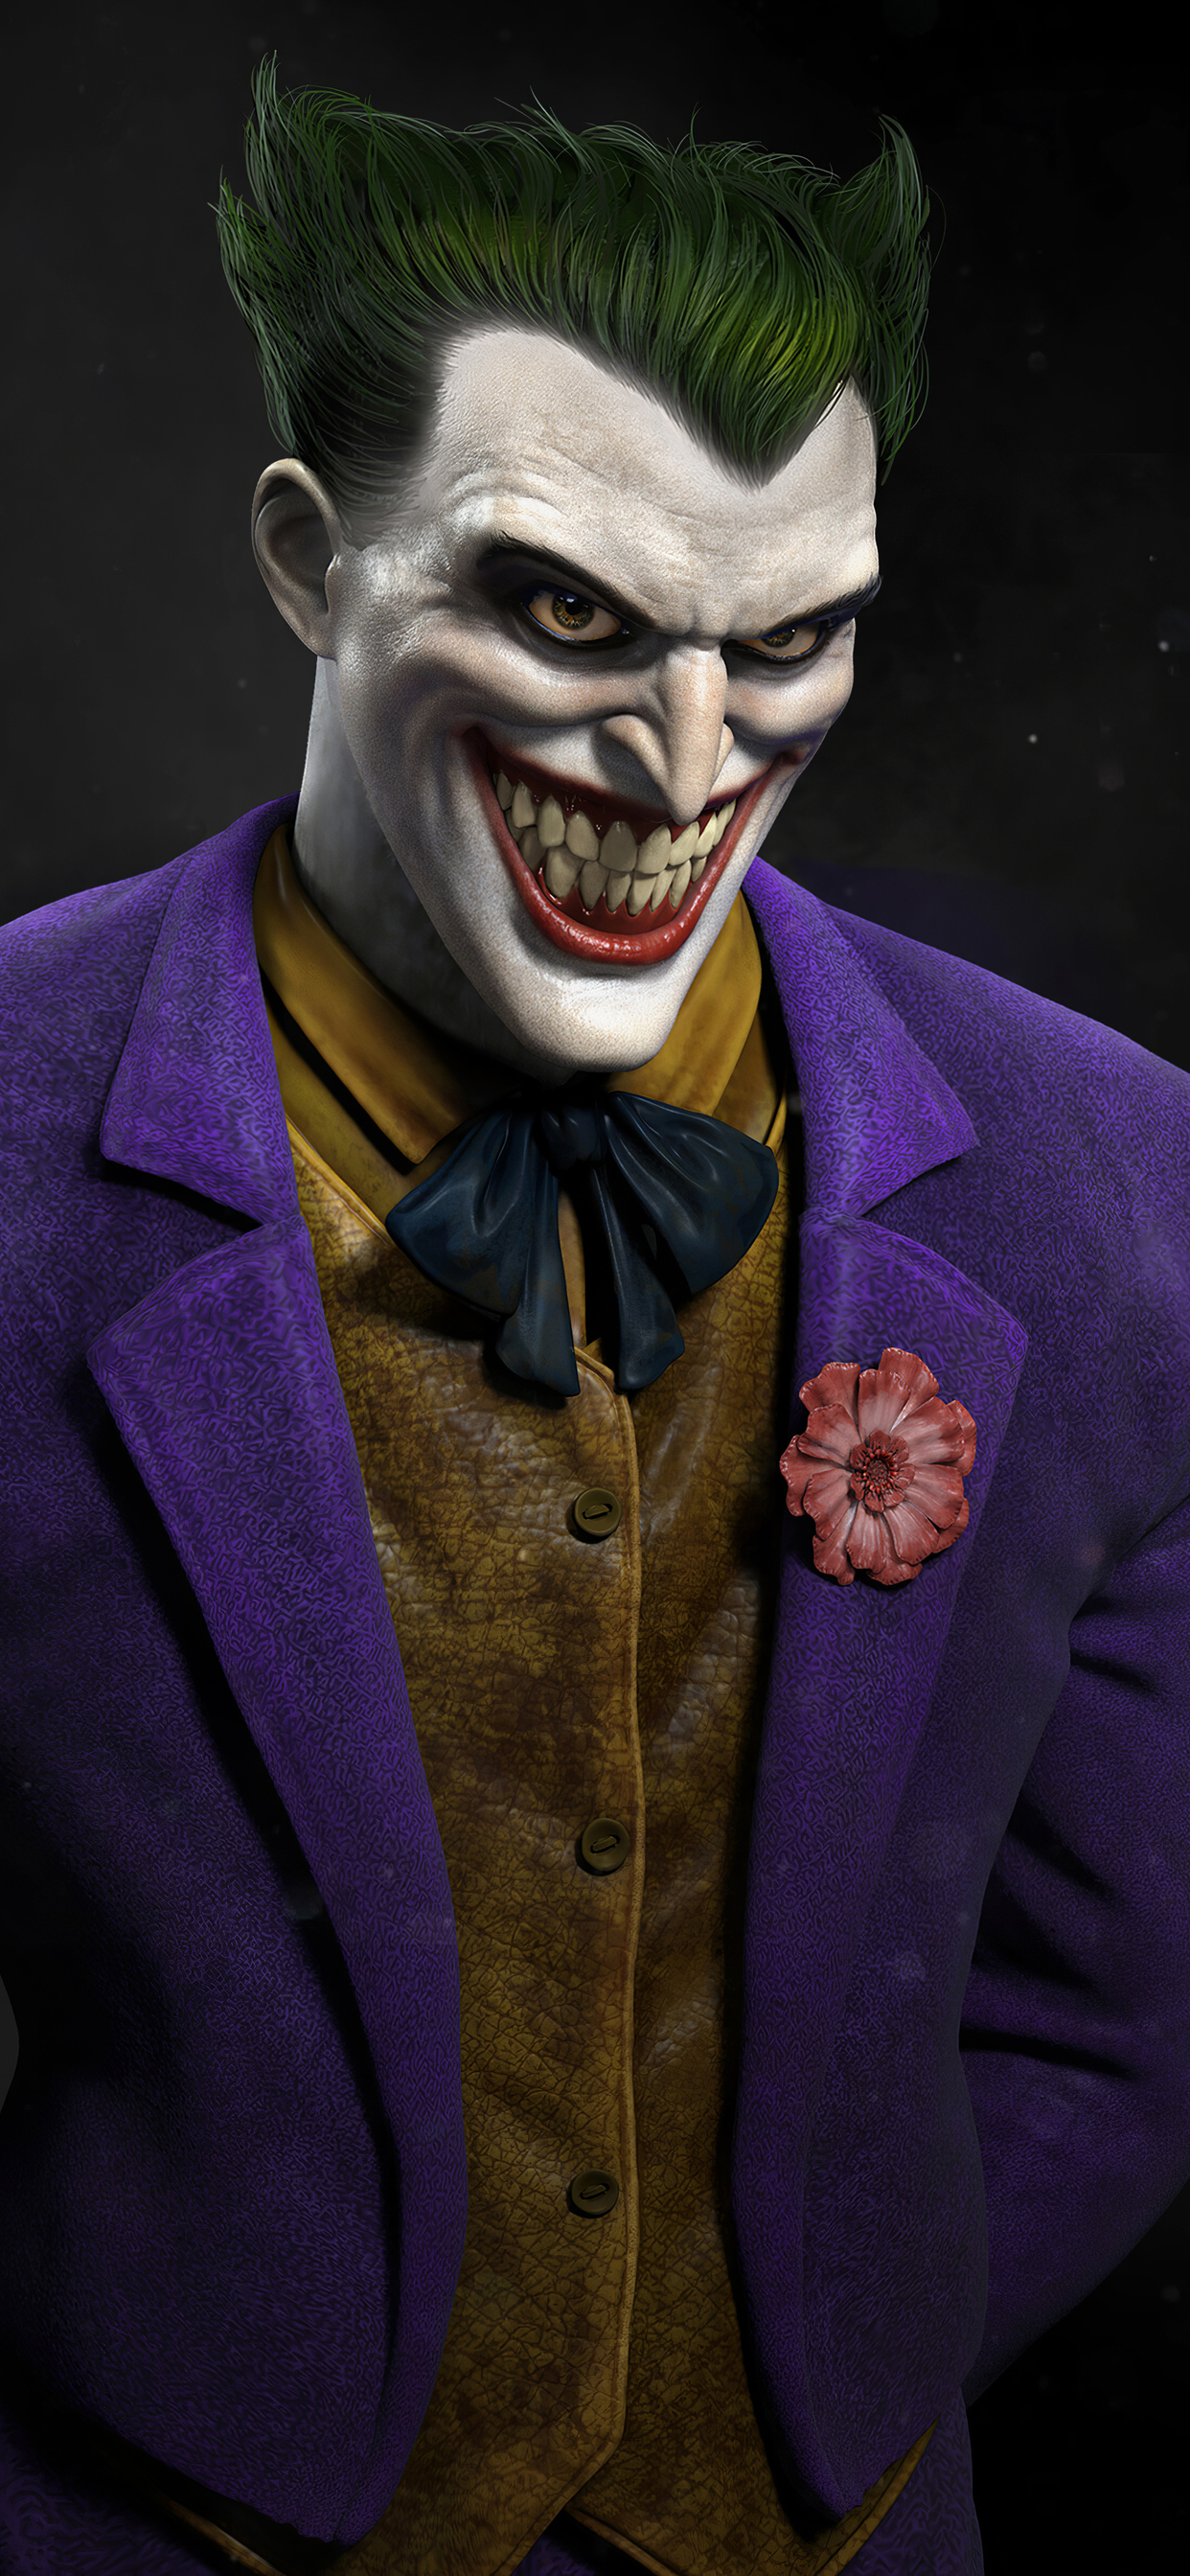 joker-closeup-laugh-15.jpg